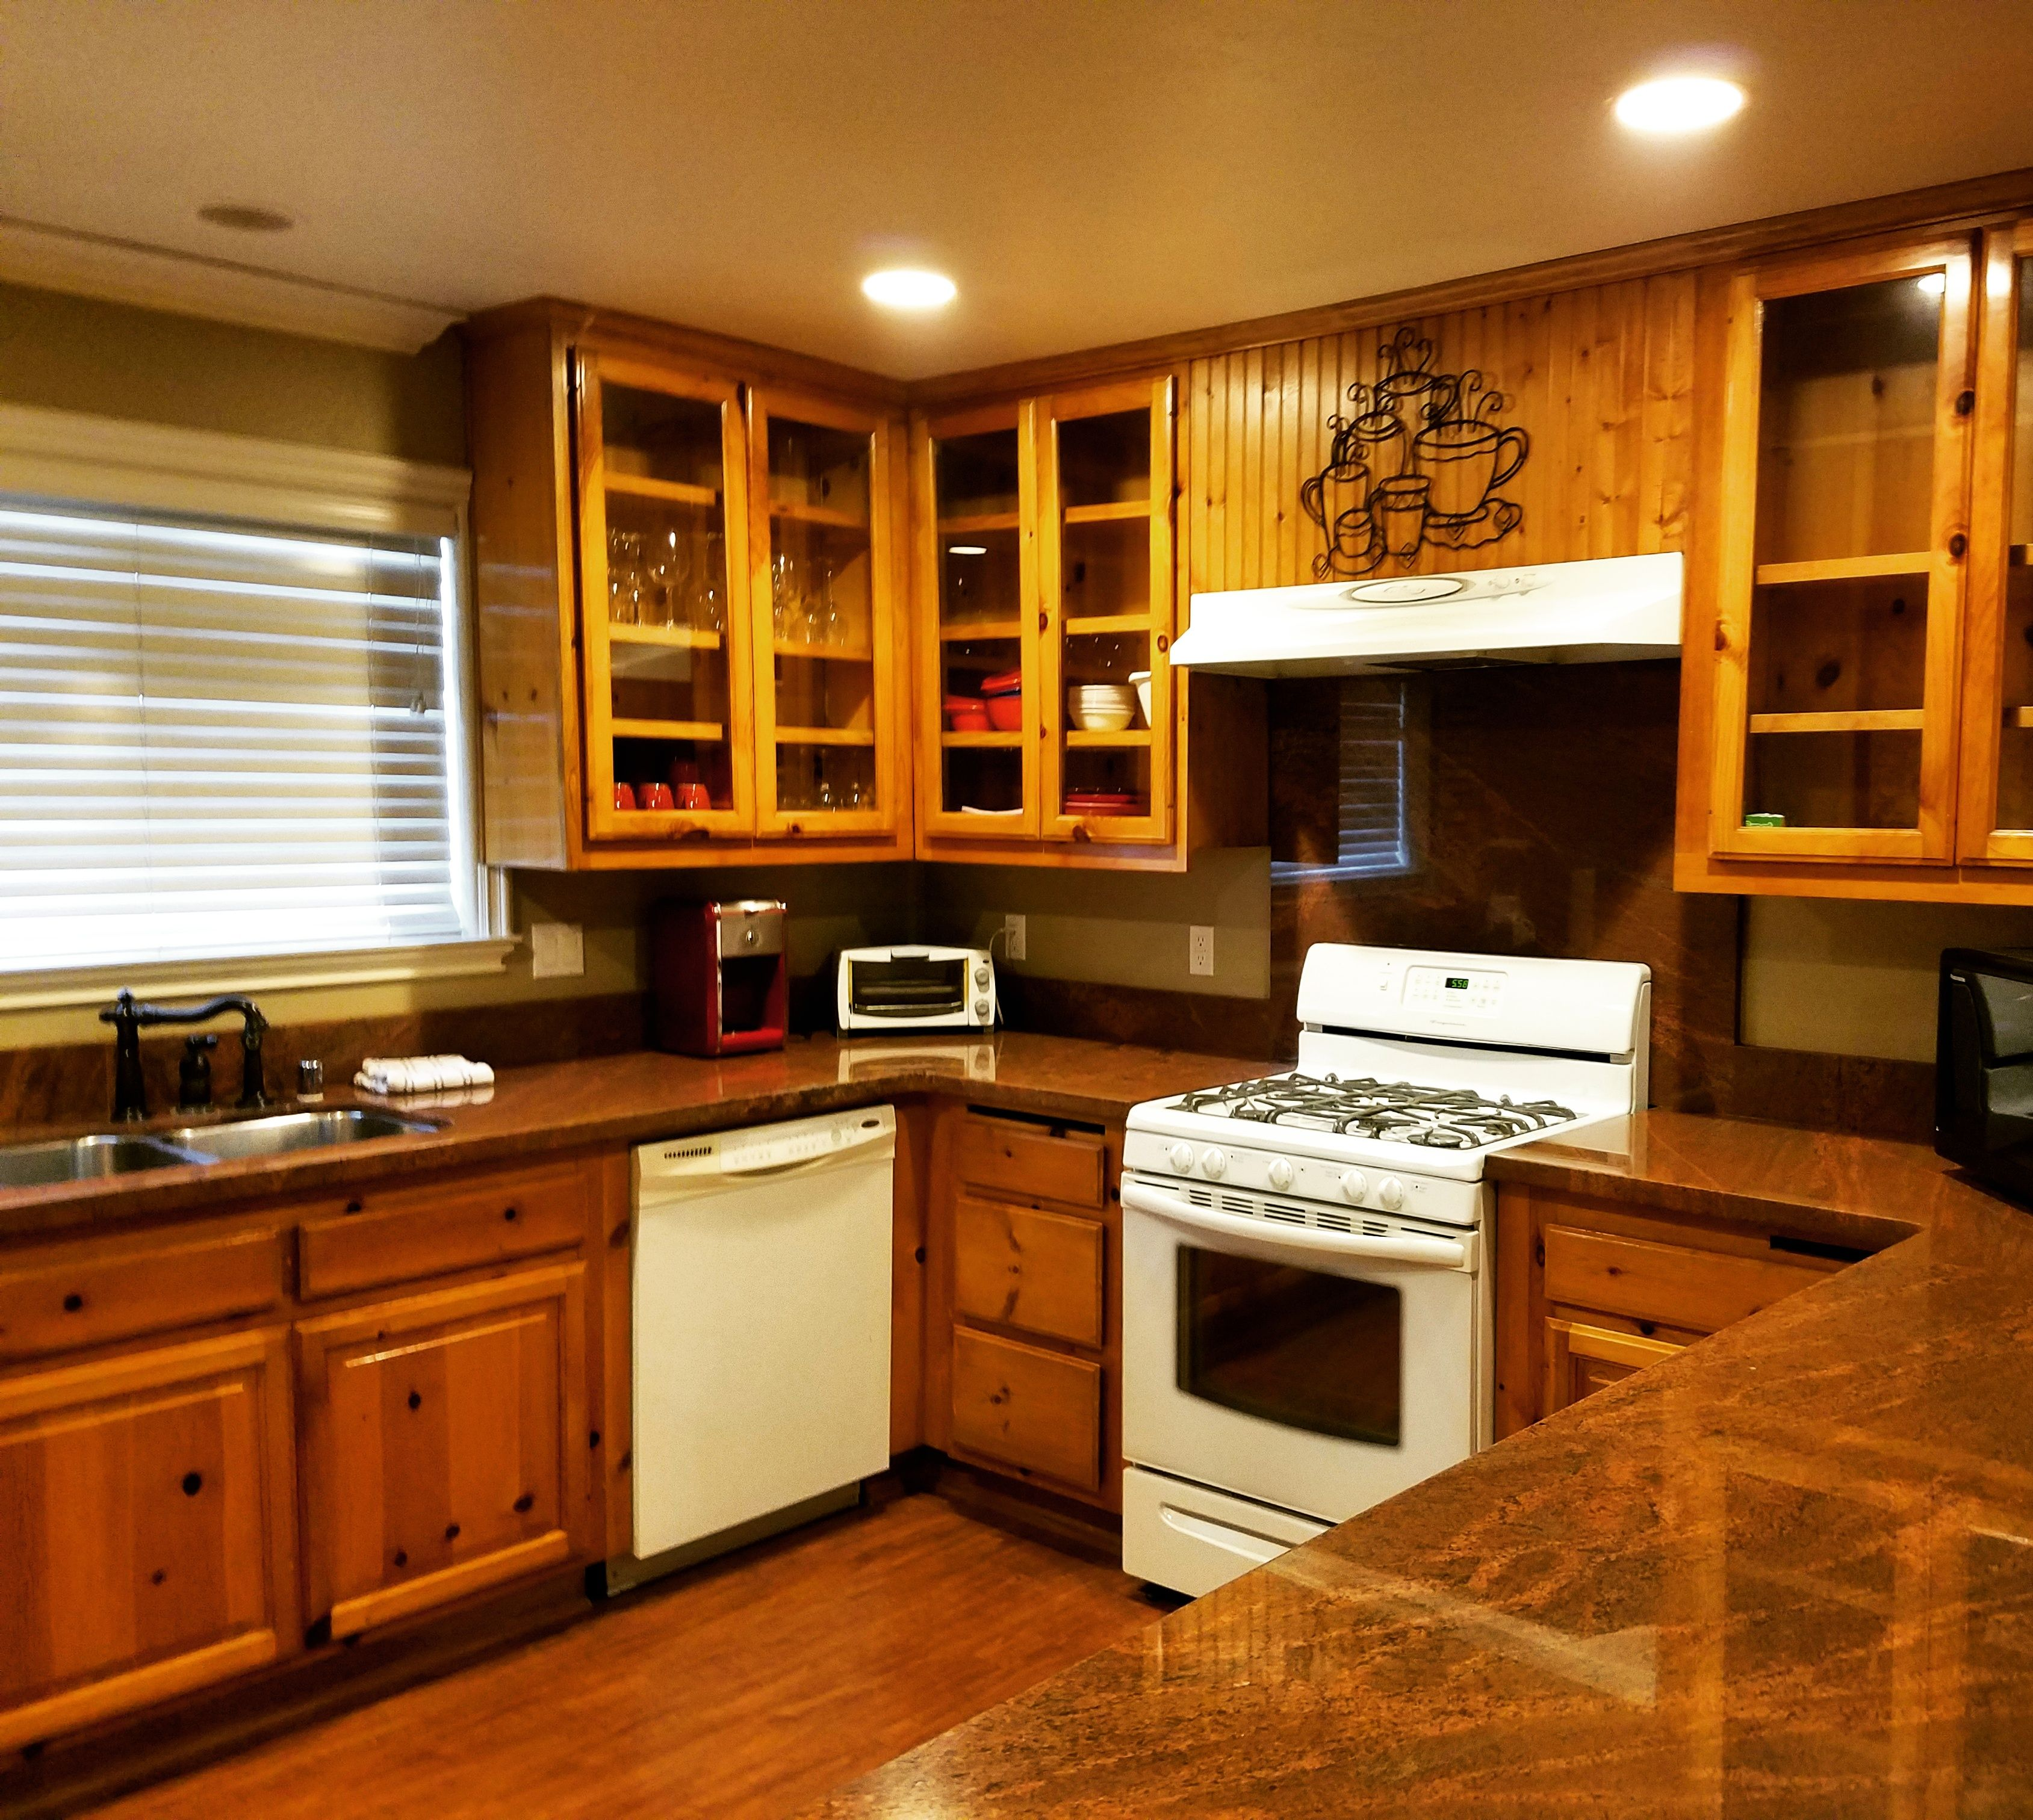 Awesome vacation rental in Temecula Wine country! (With ...